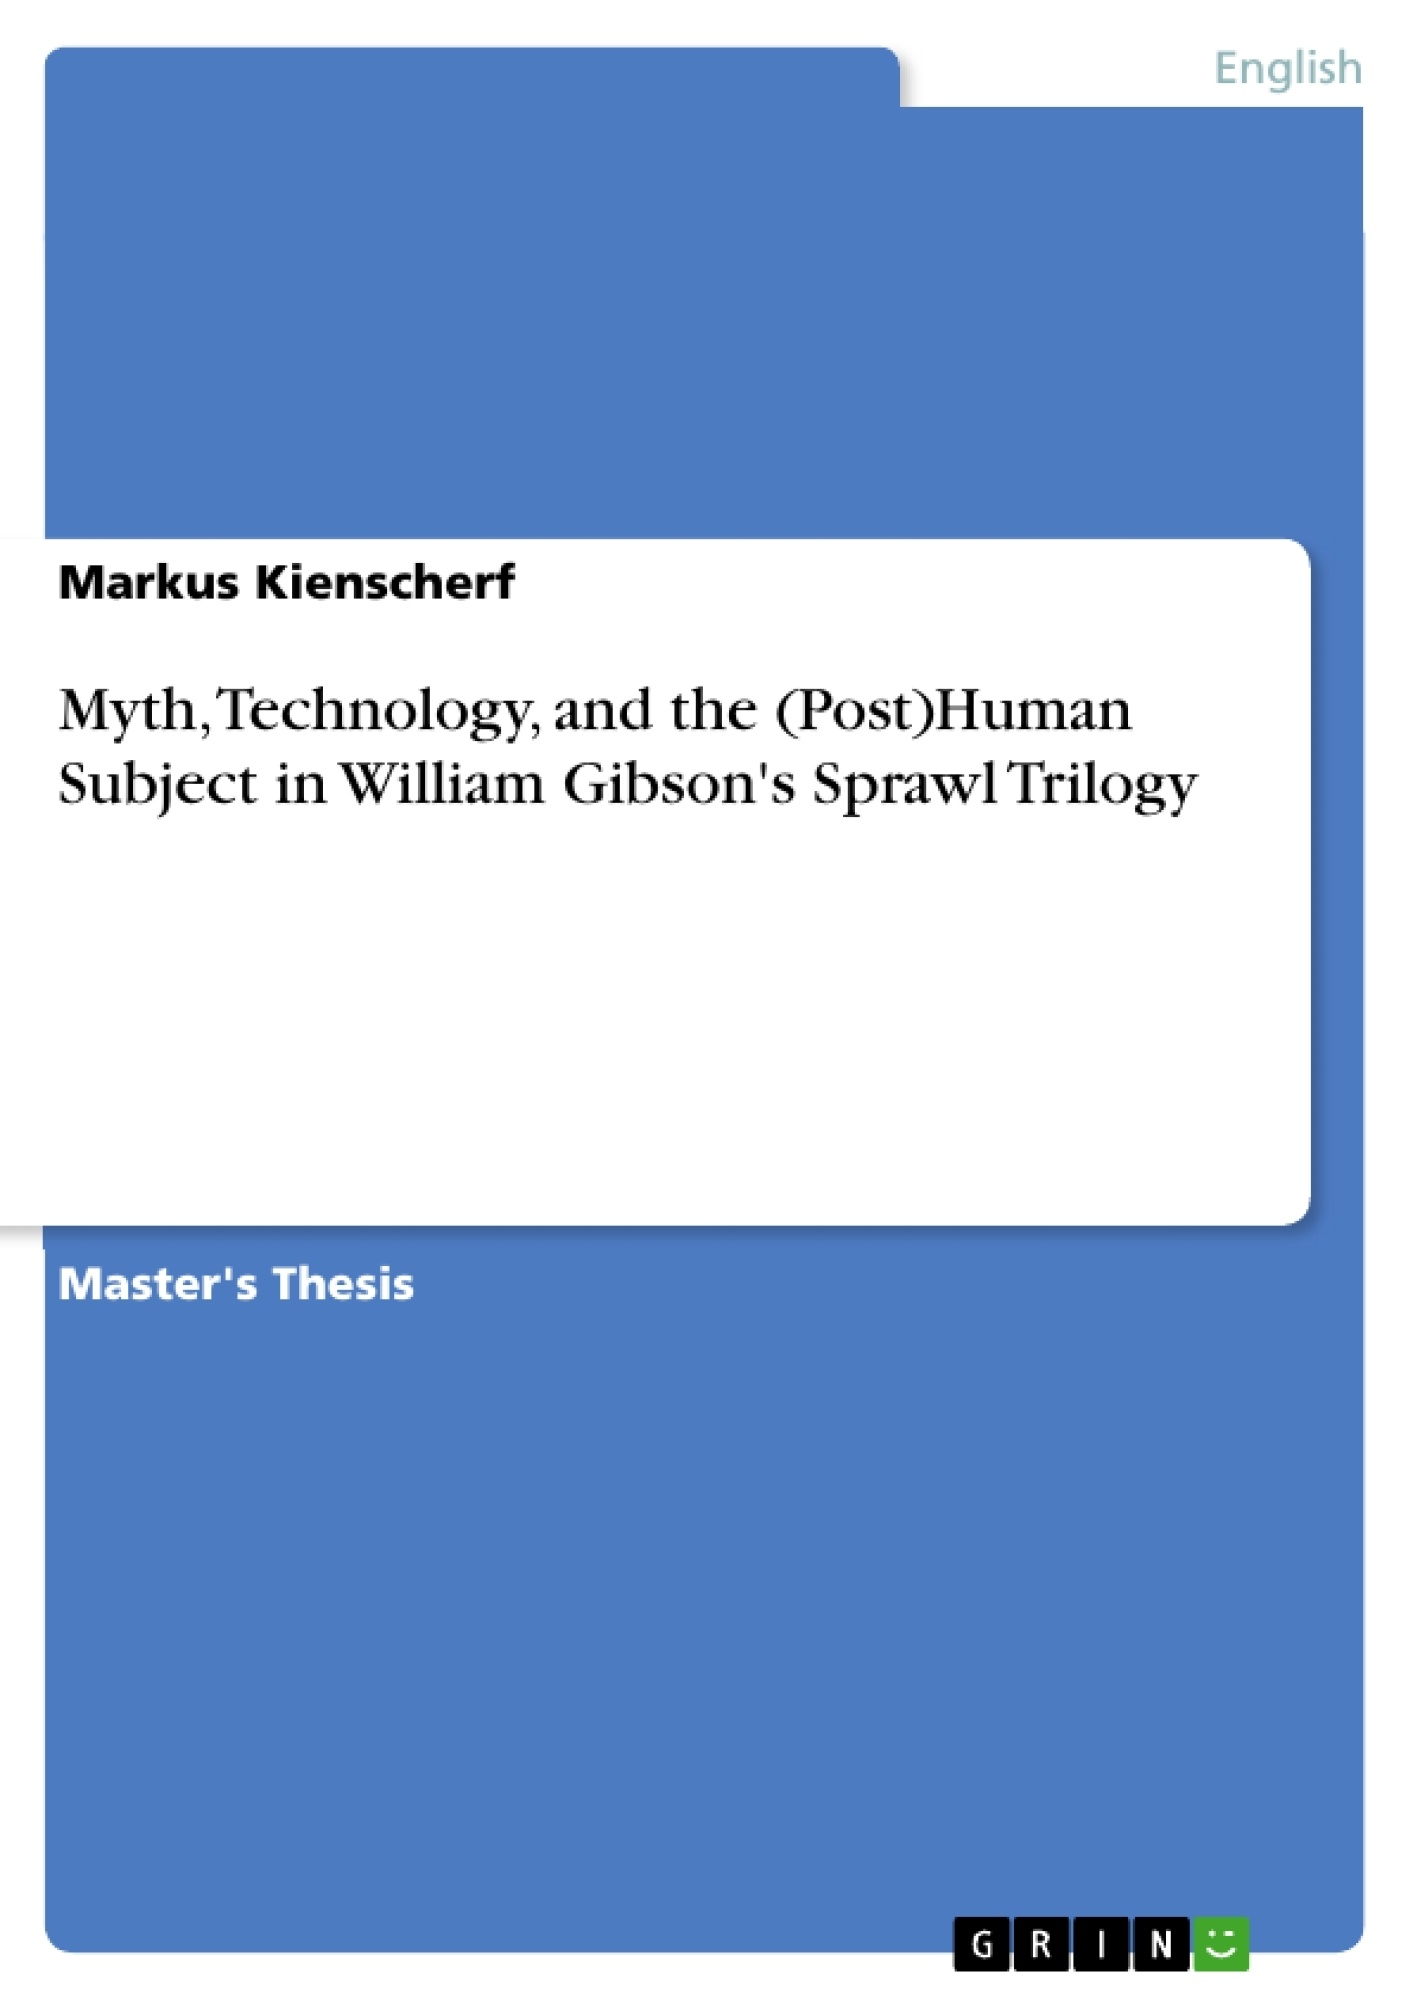 Title: Myth, Technology, and the (Post)Human Subject in William Gibson's Sprawl Trilogy